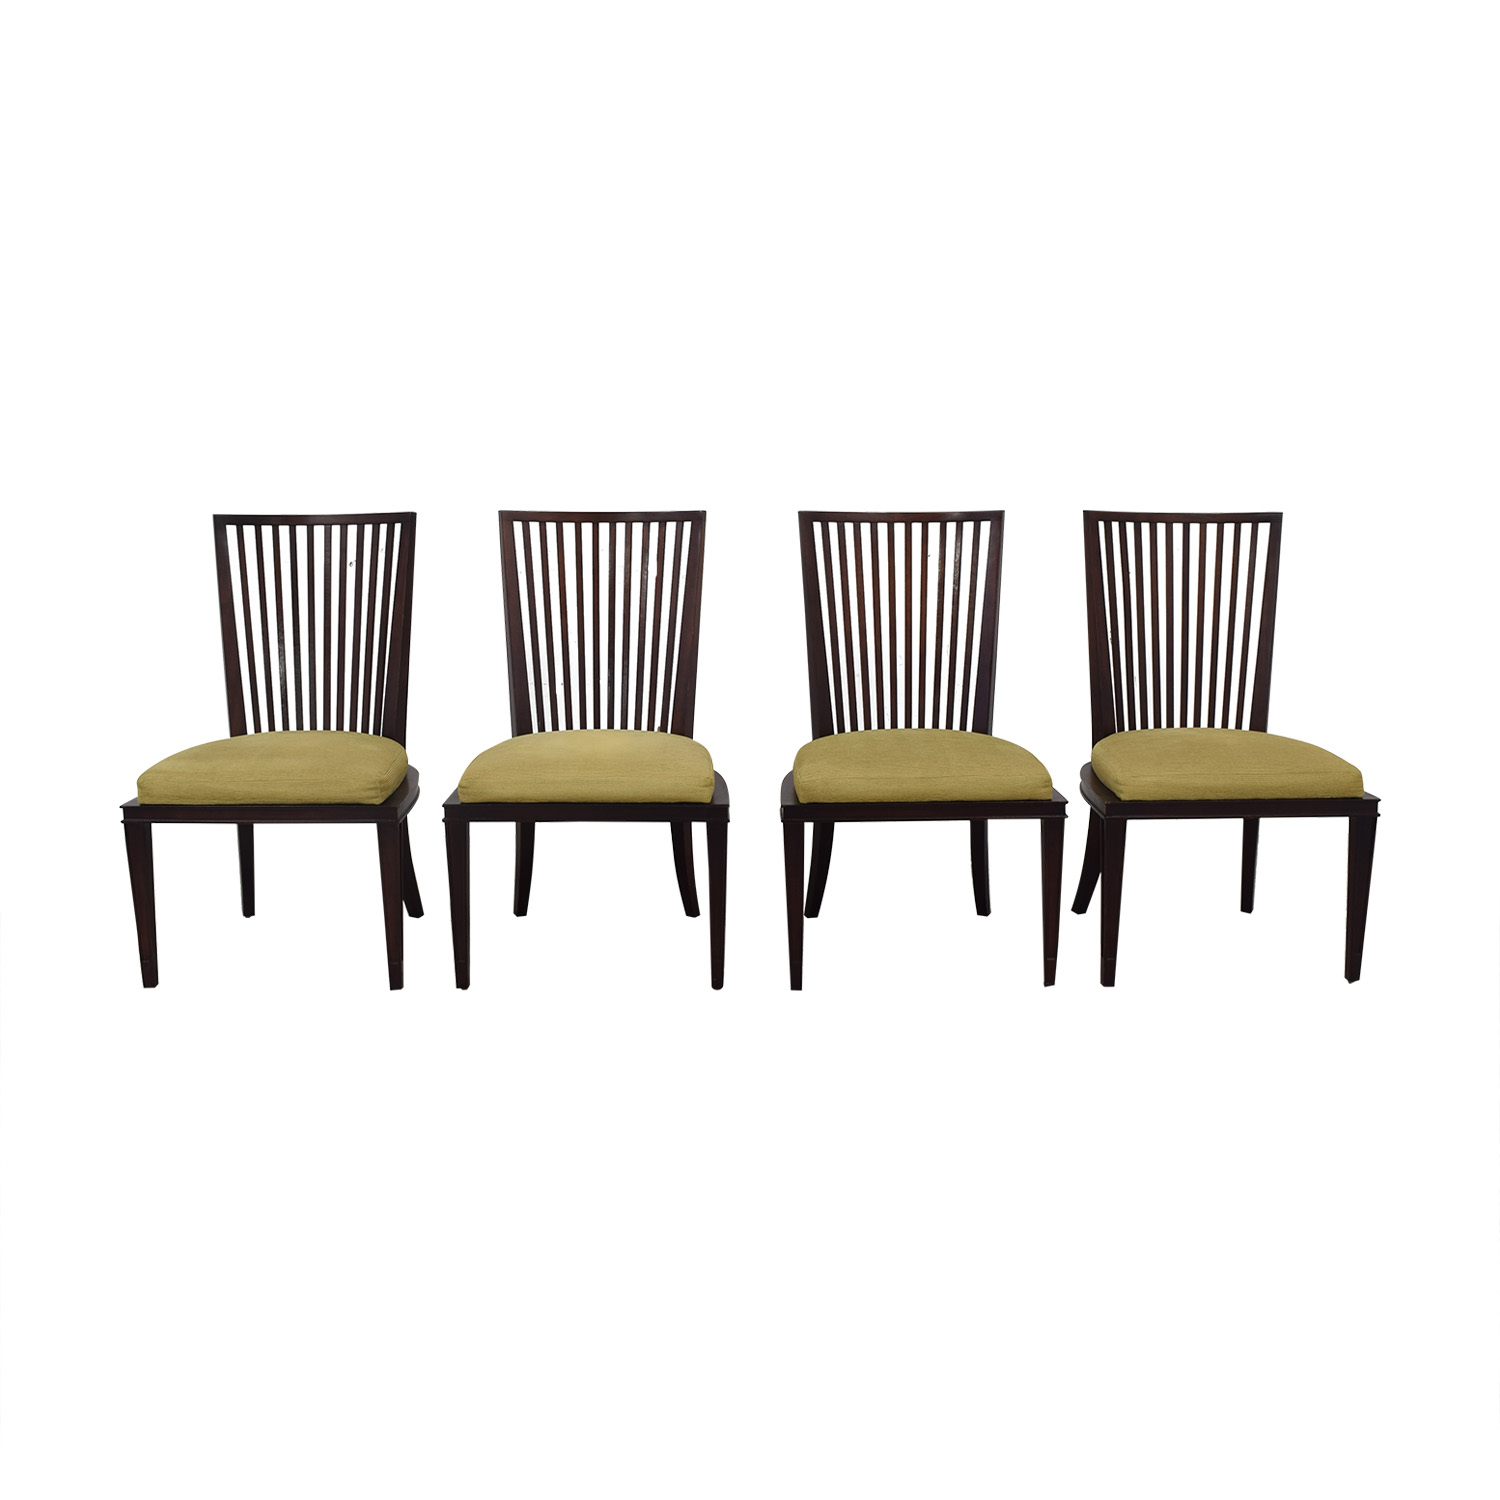 Baker Furniture Barbara Barry by Baker Dining Room Chairs price